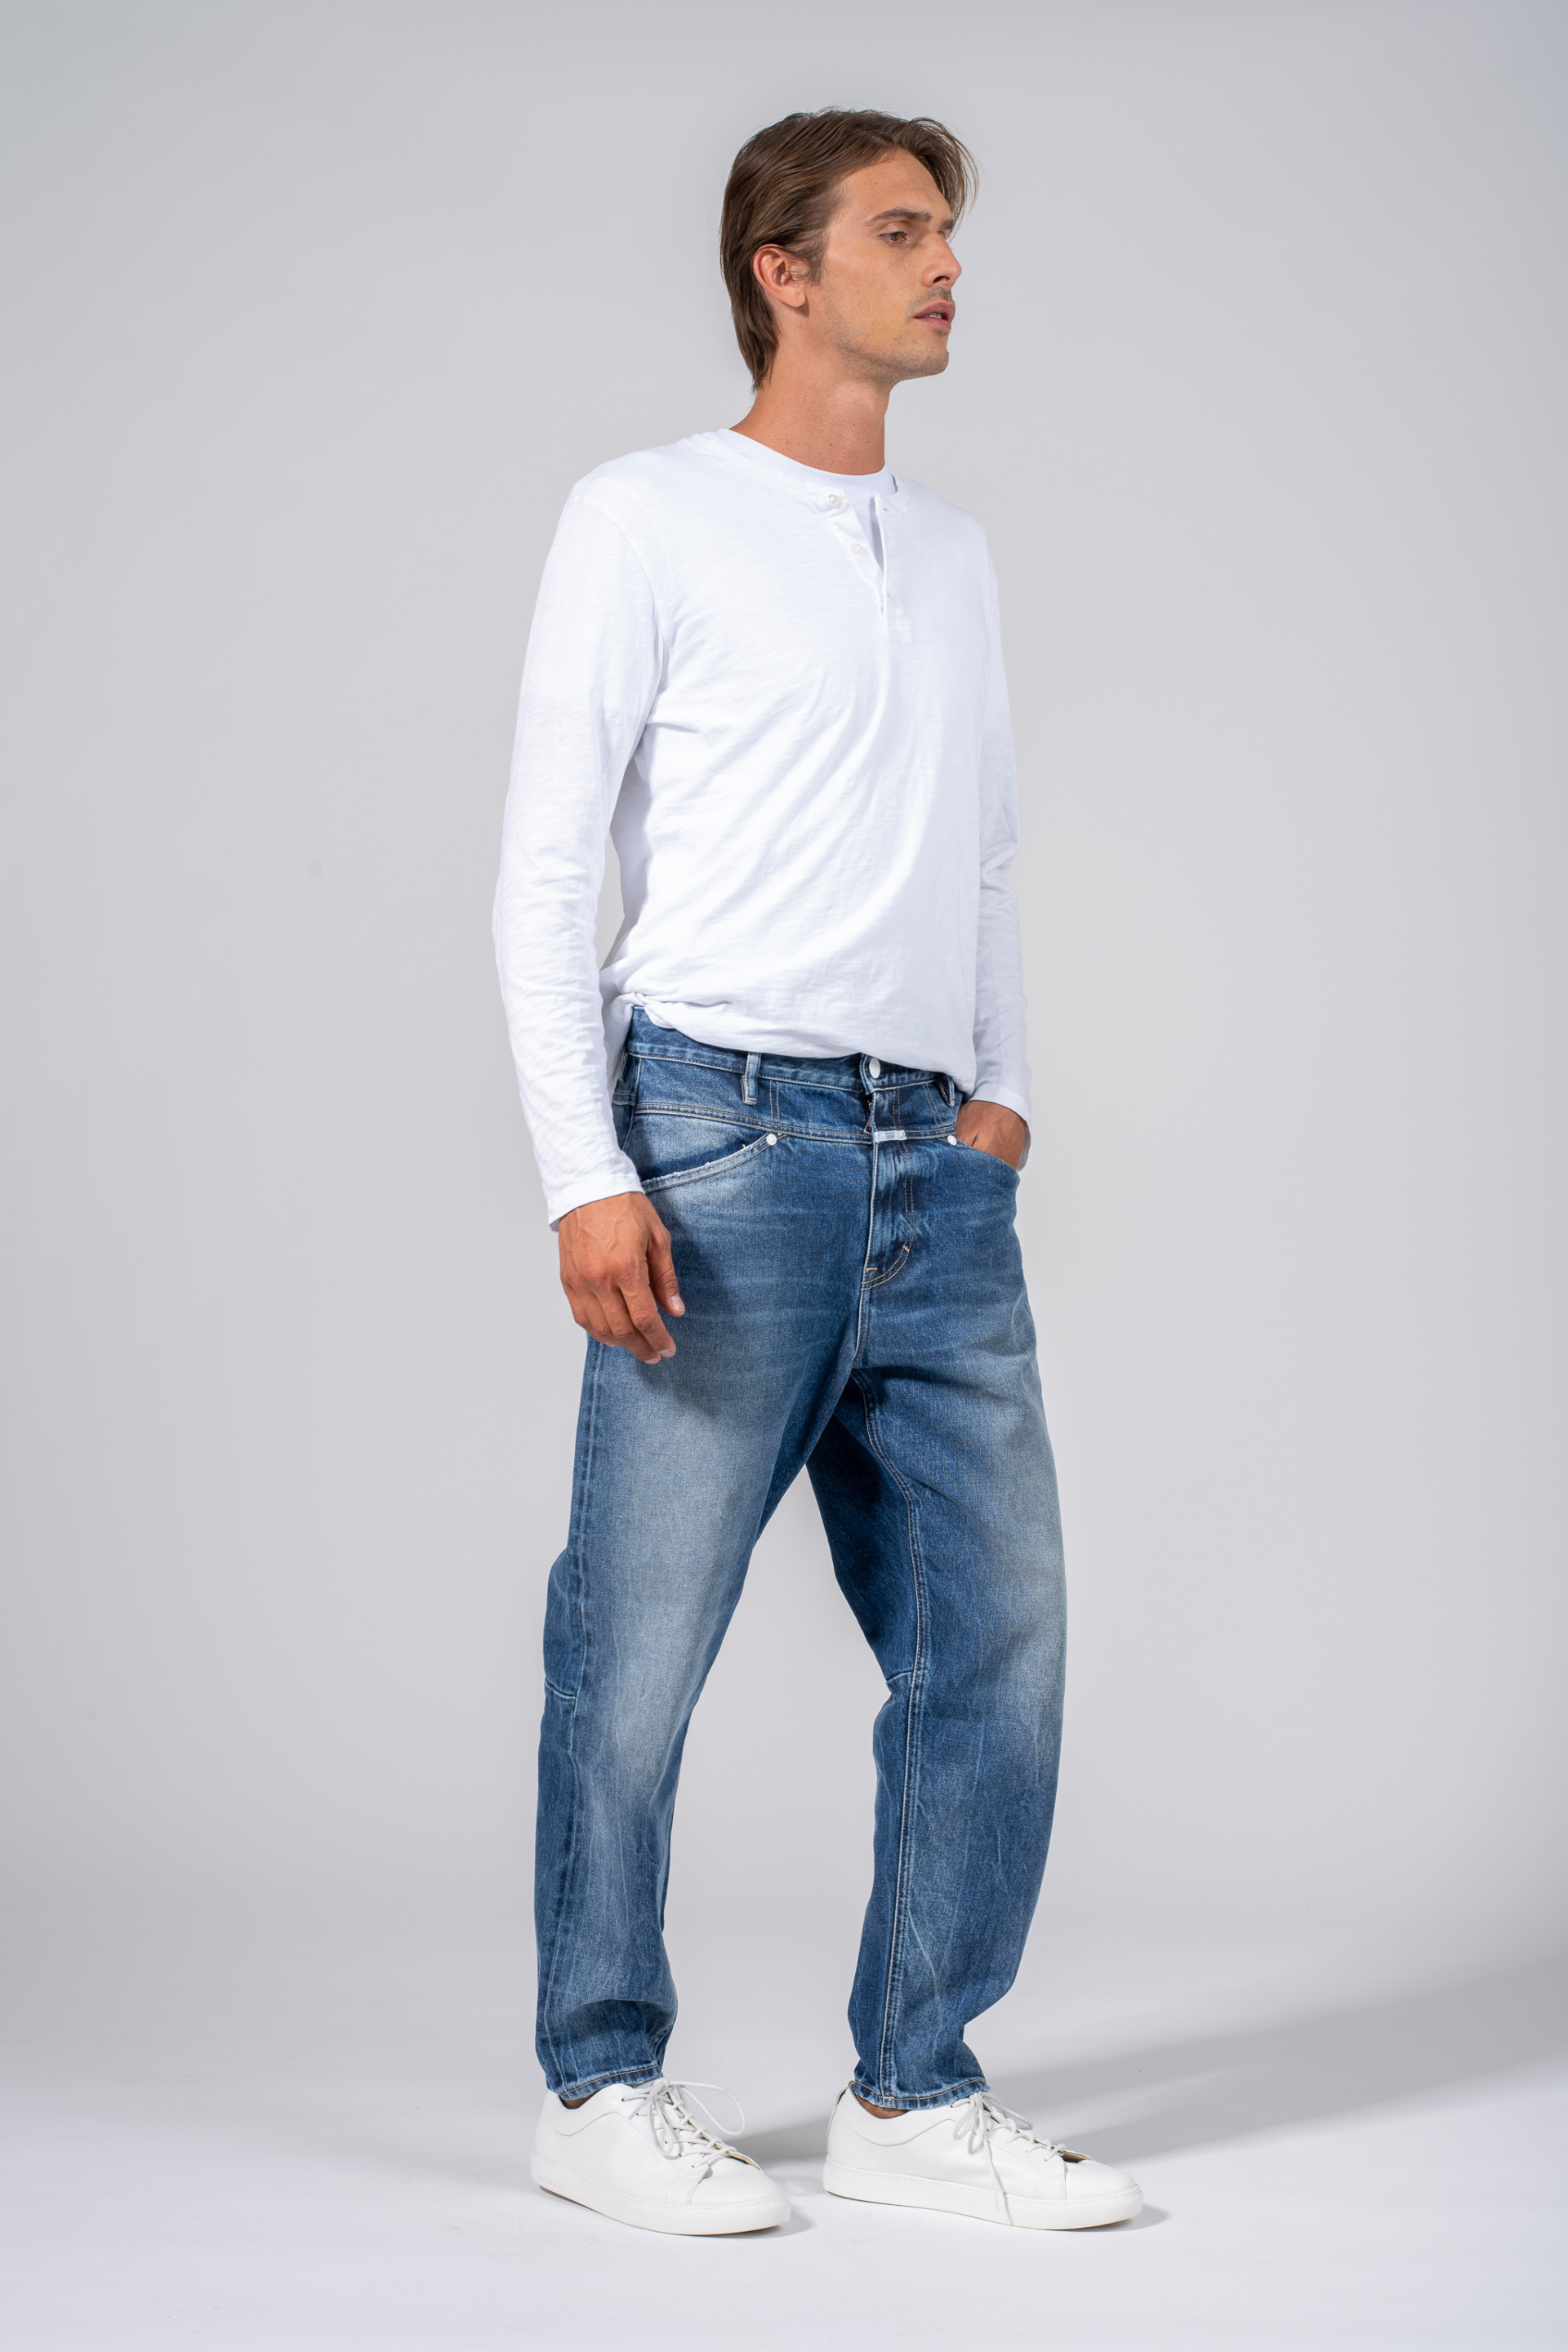 denim jeans x lent tapered mid blue relaxed closed candiani denim store